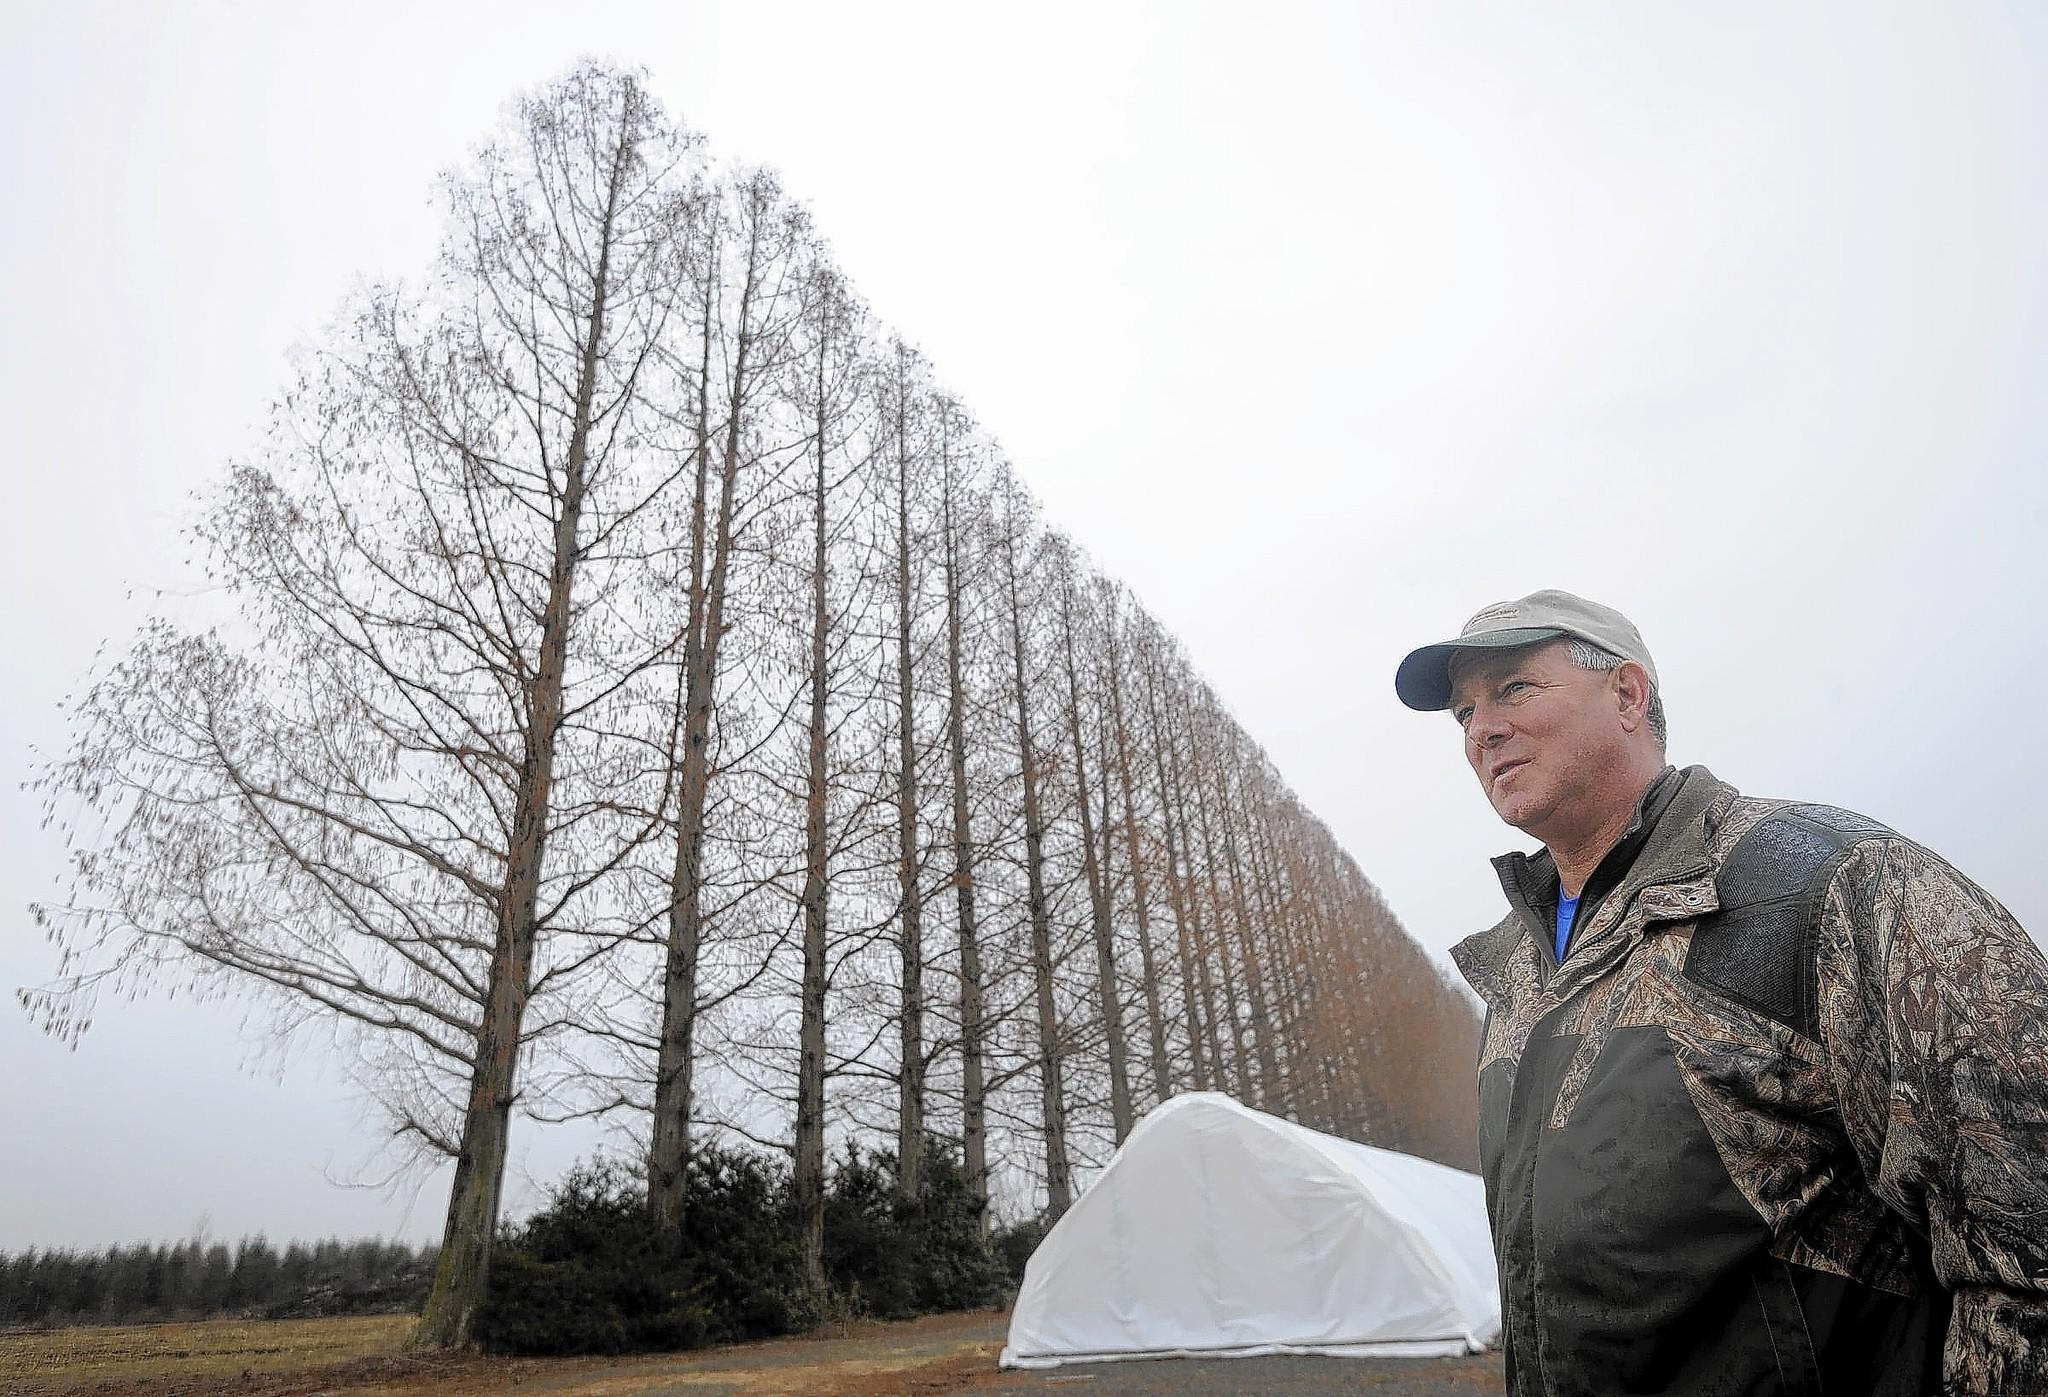 Bernie Kohl Jr., owner of Angelica Nurseries, is pictured on his property with dawn redwoods.